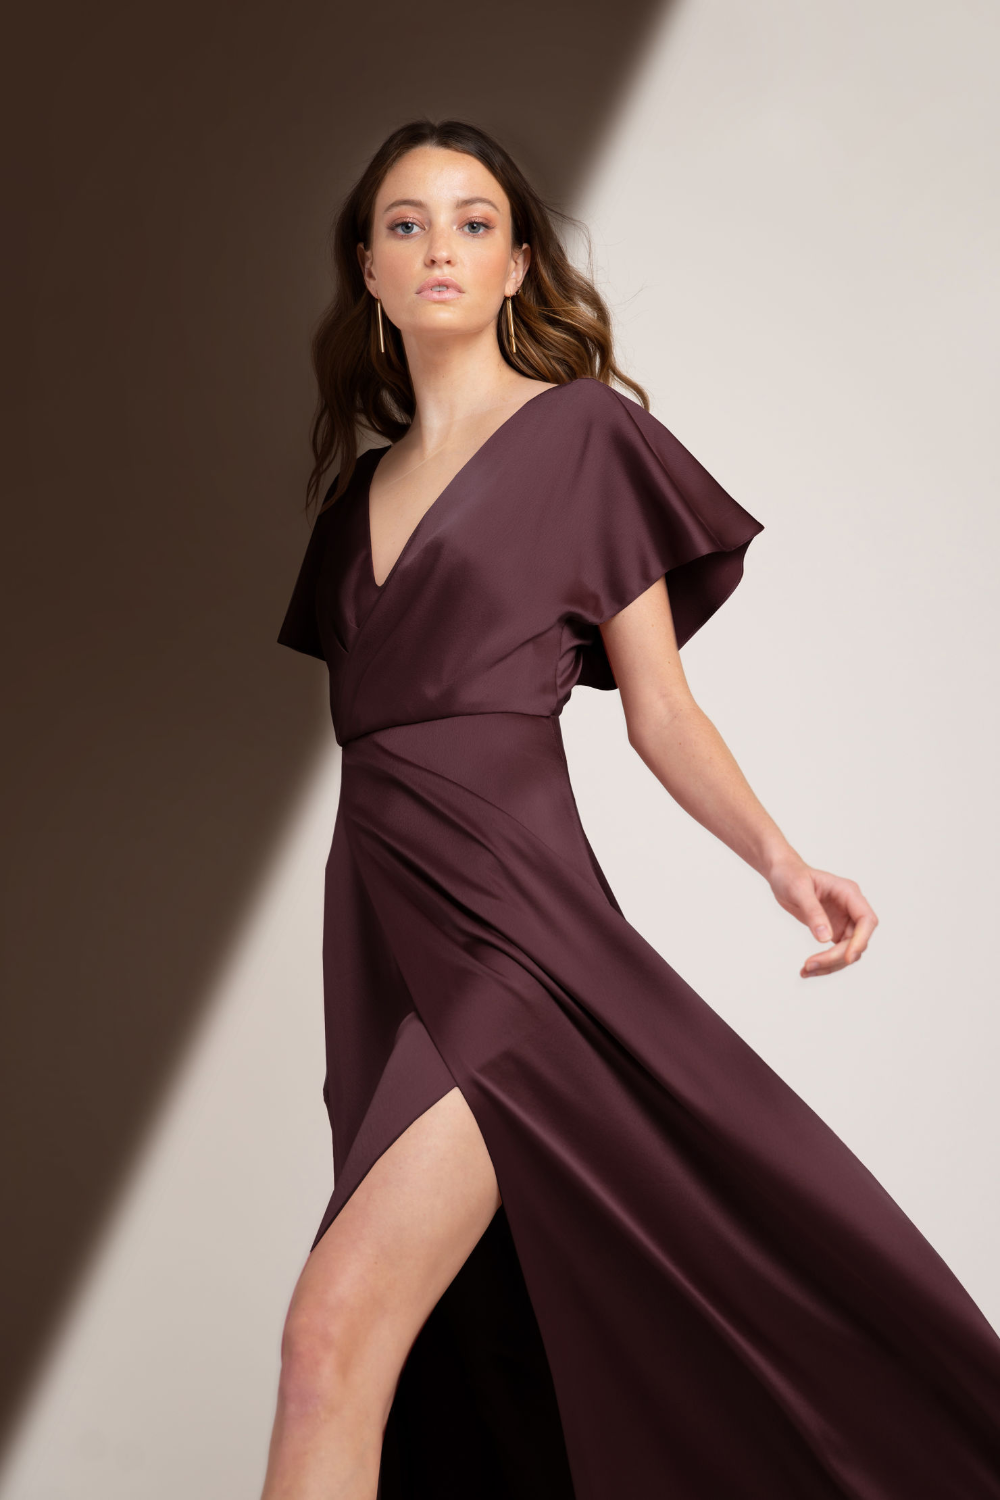 purple bridesmaids dresses with sleeves from jenny yoo